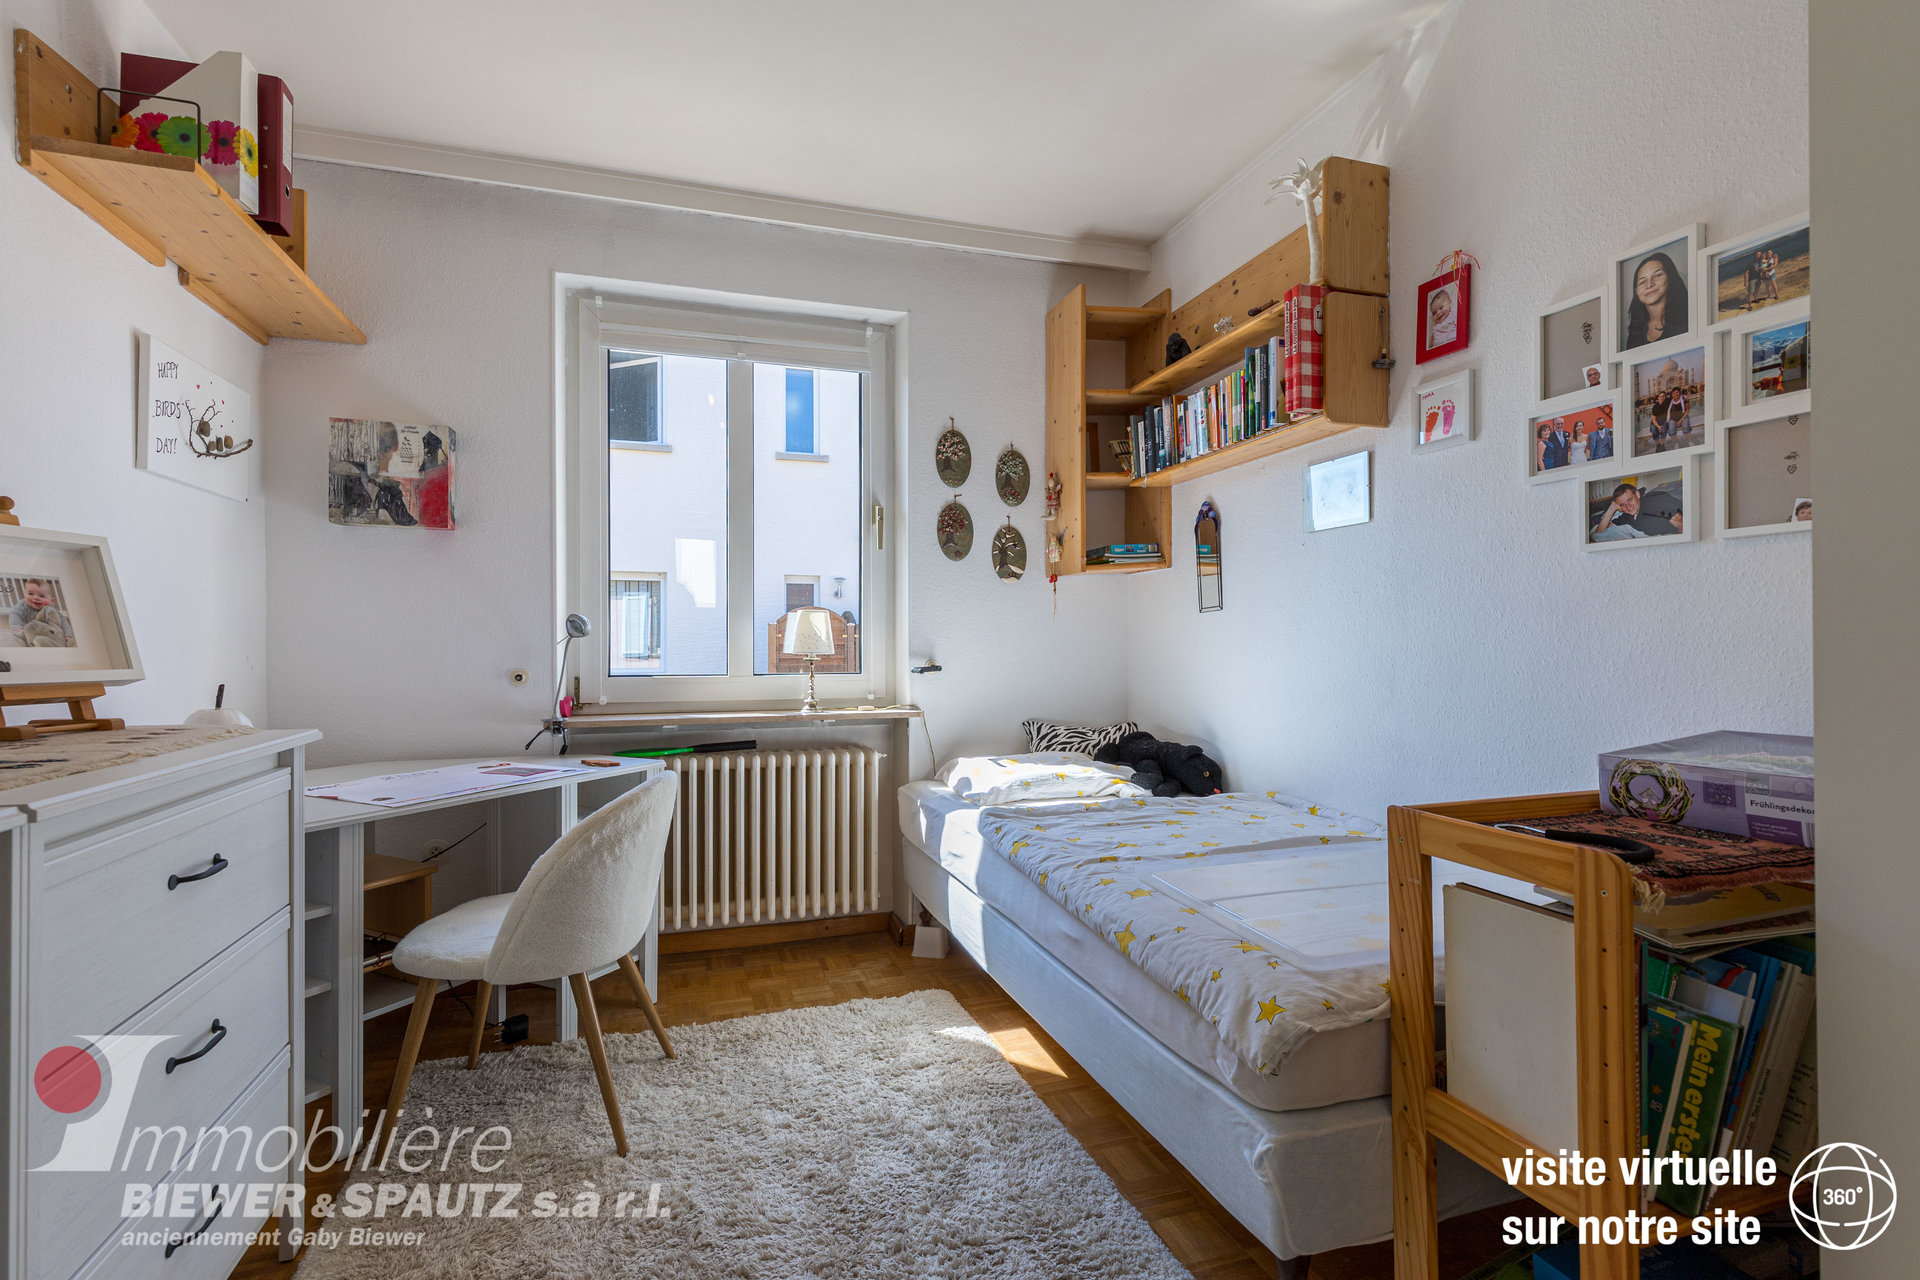 SOLD - house/bungalow with 2/3 bedrooms in Sandweiler